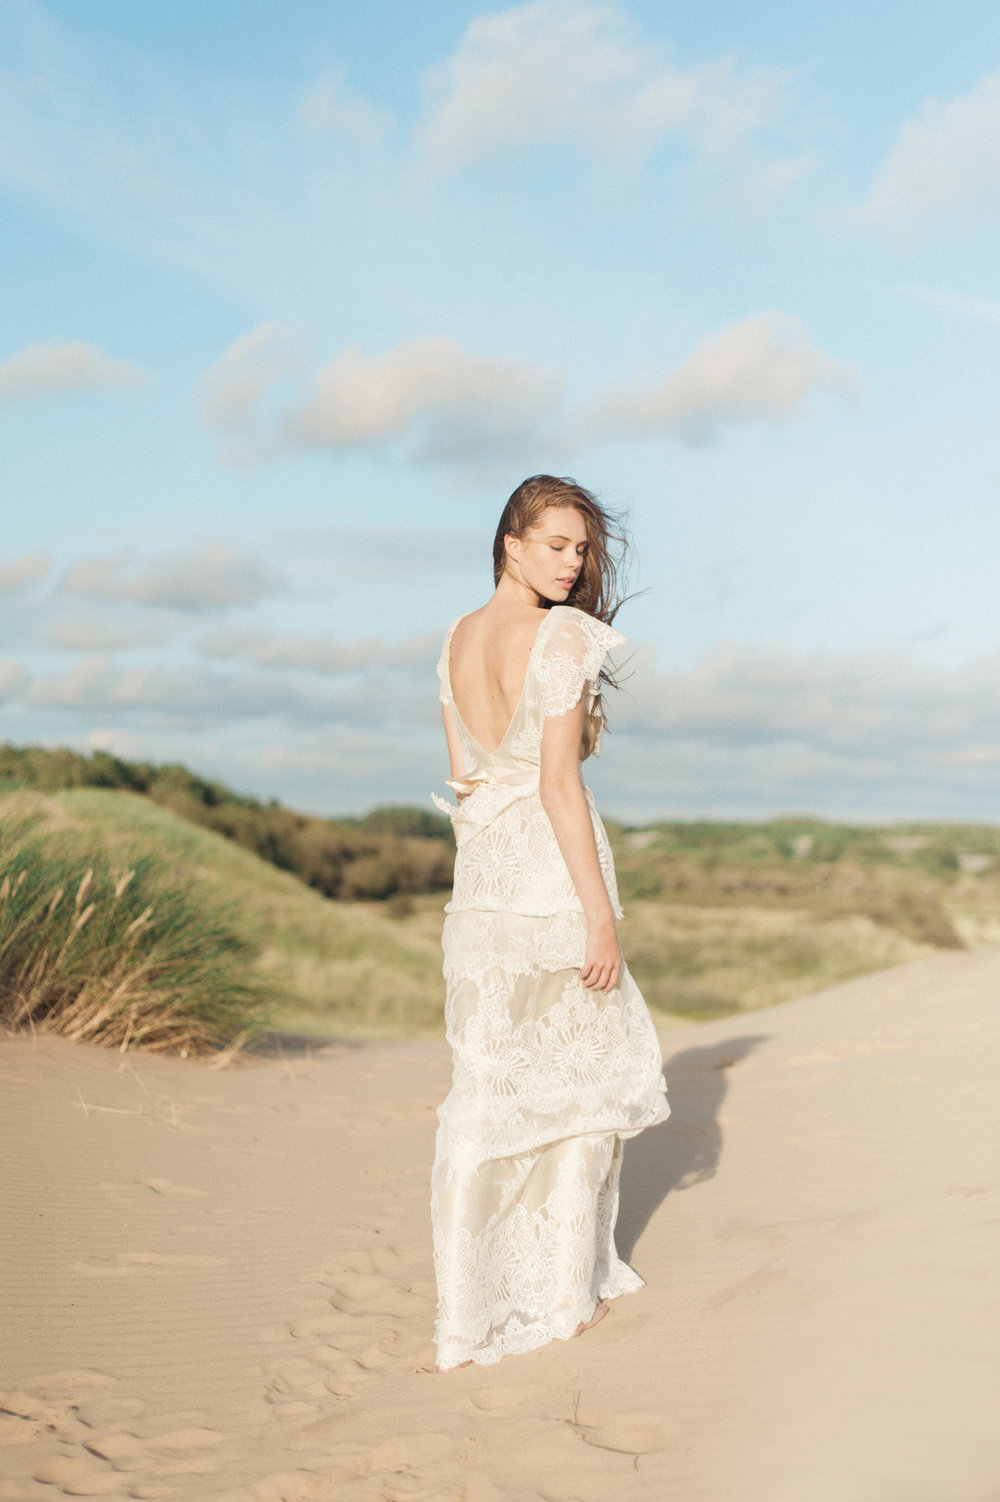 Kate-Beaumont-Wedding-Dresses-Formby-Beach-Emma-Pilkington-24.jpg